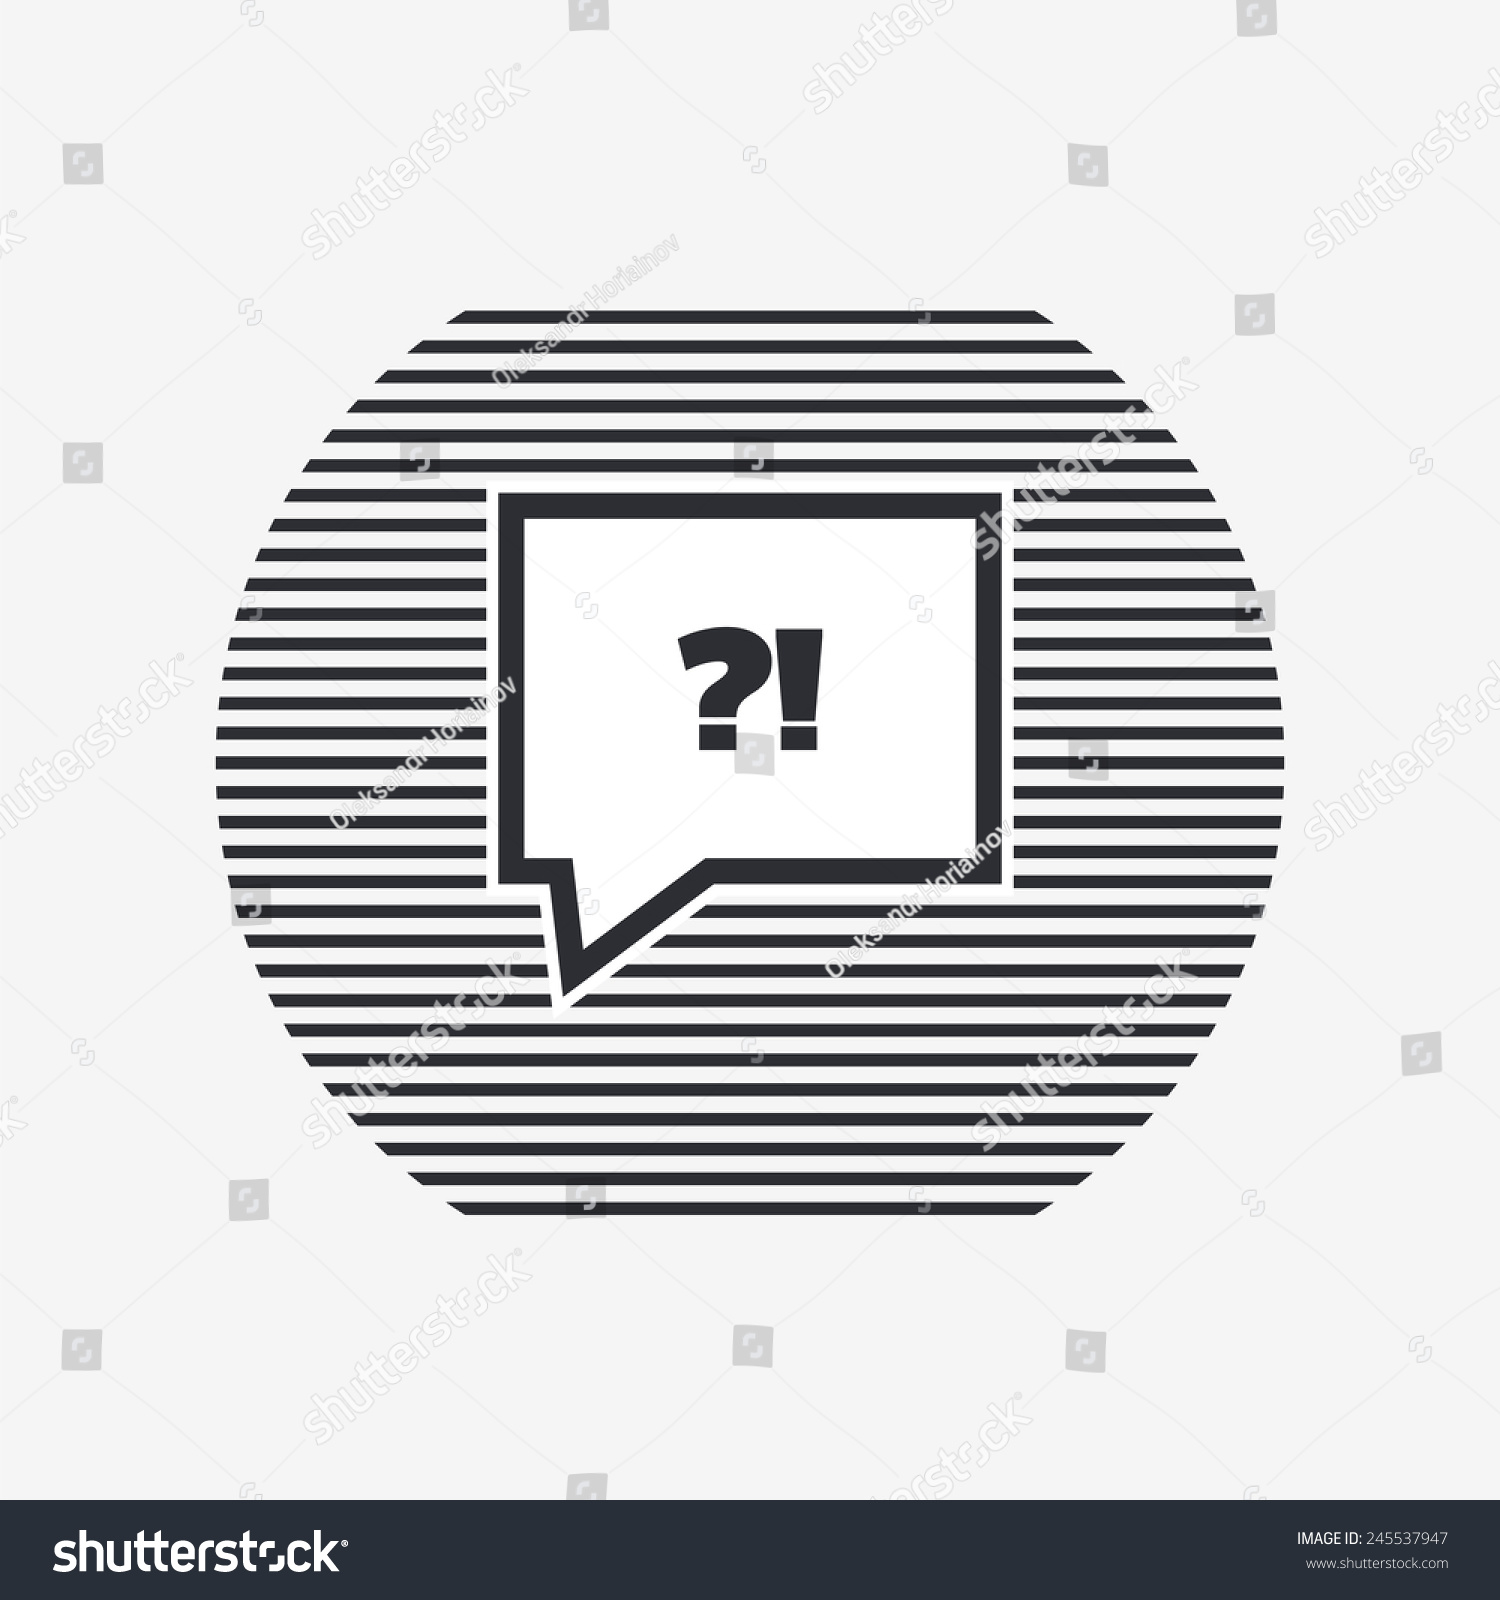 Exclamation and question mark in speech bubble symbol Flat design style Made in vector illustration